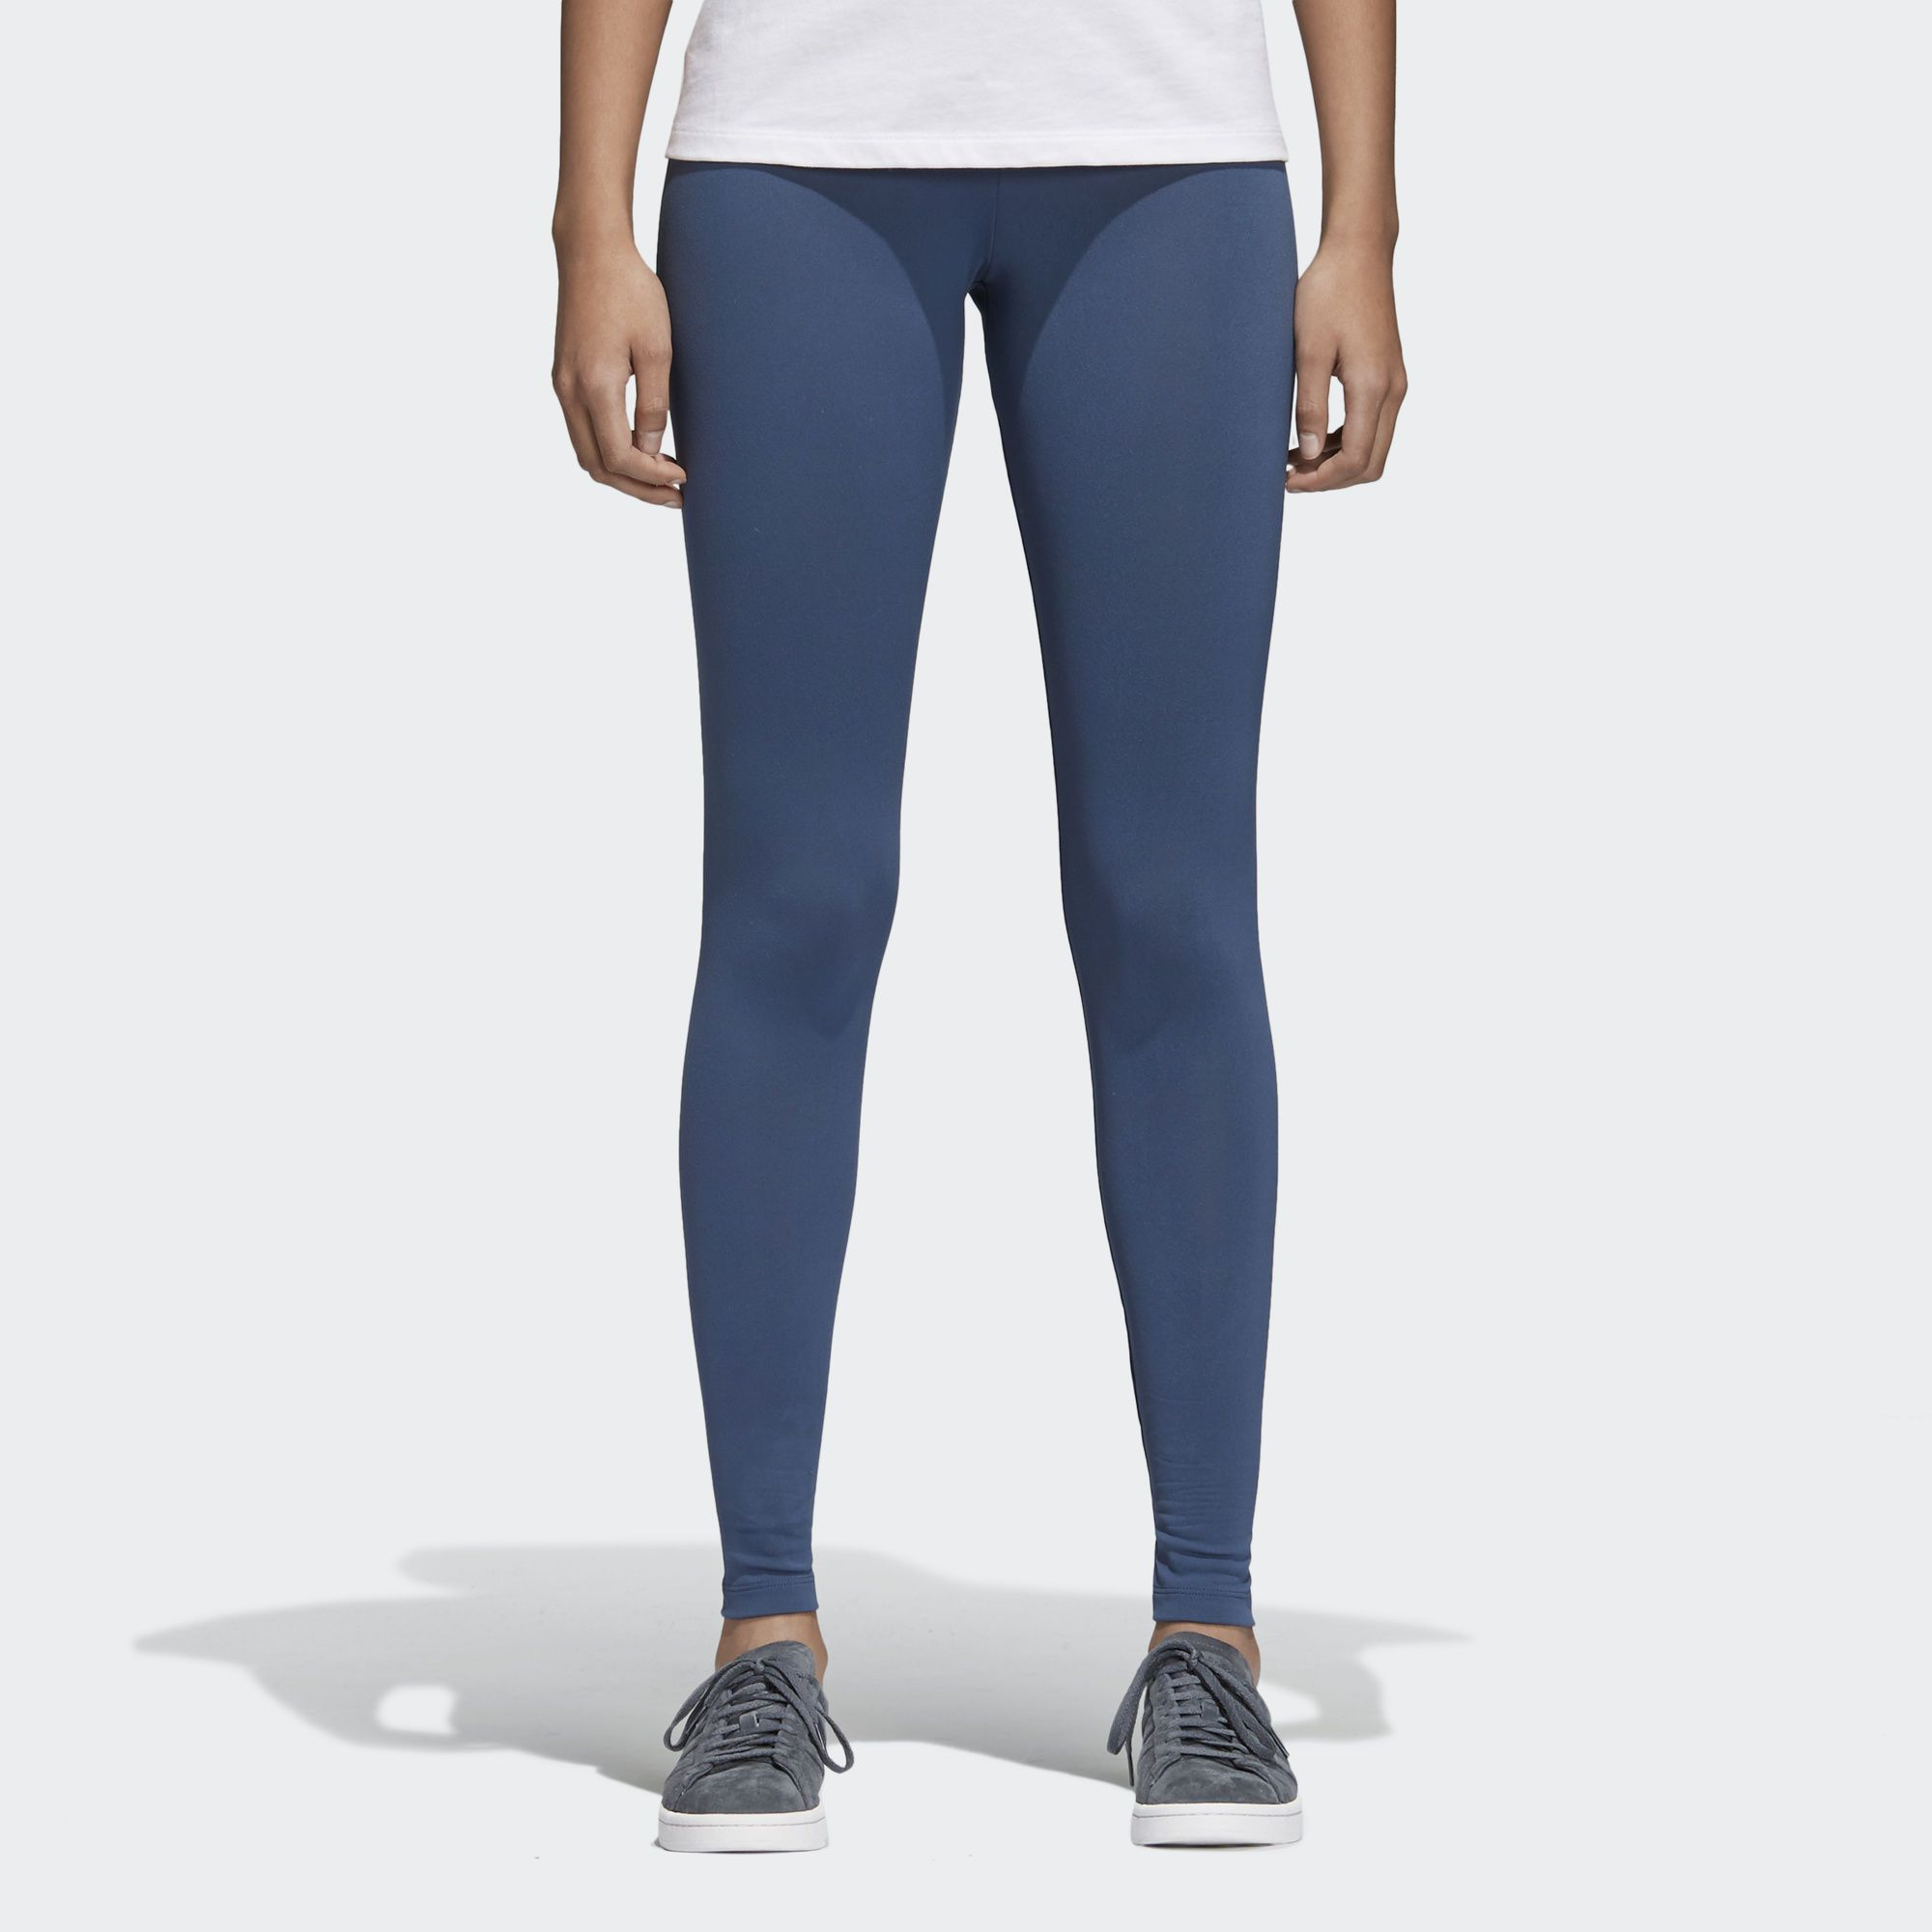 Best Offer On Adidas Women's Originals Trefoil Leggings